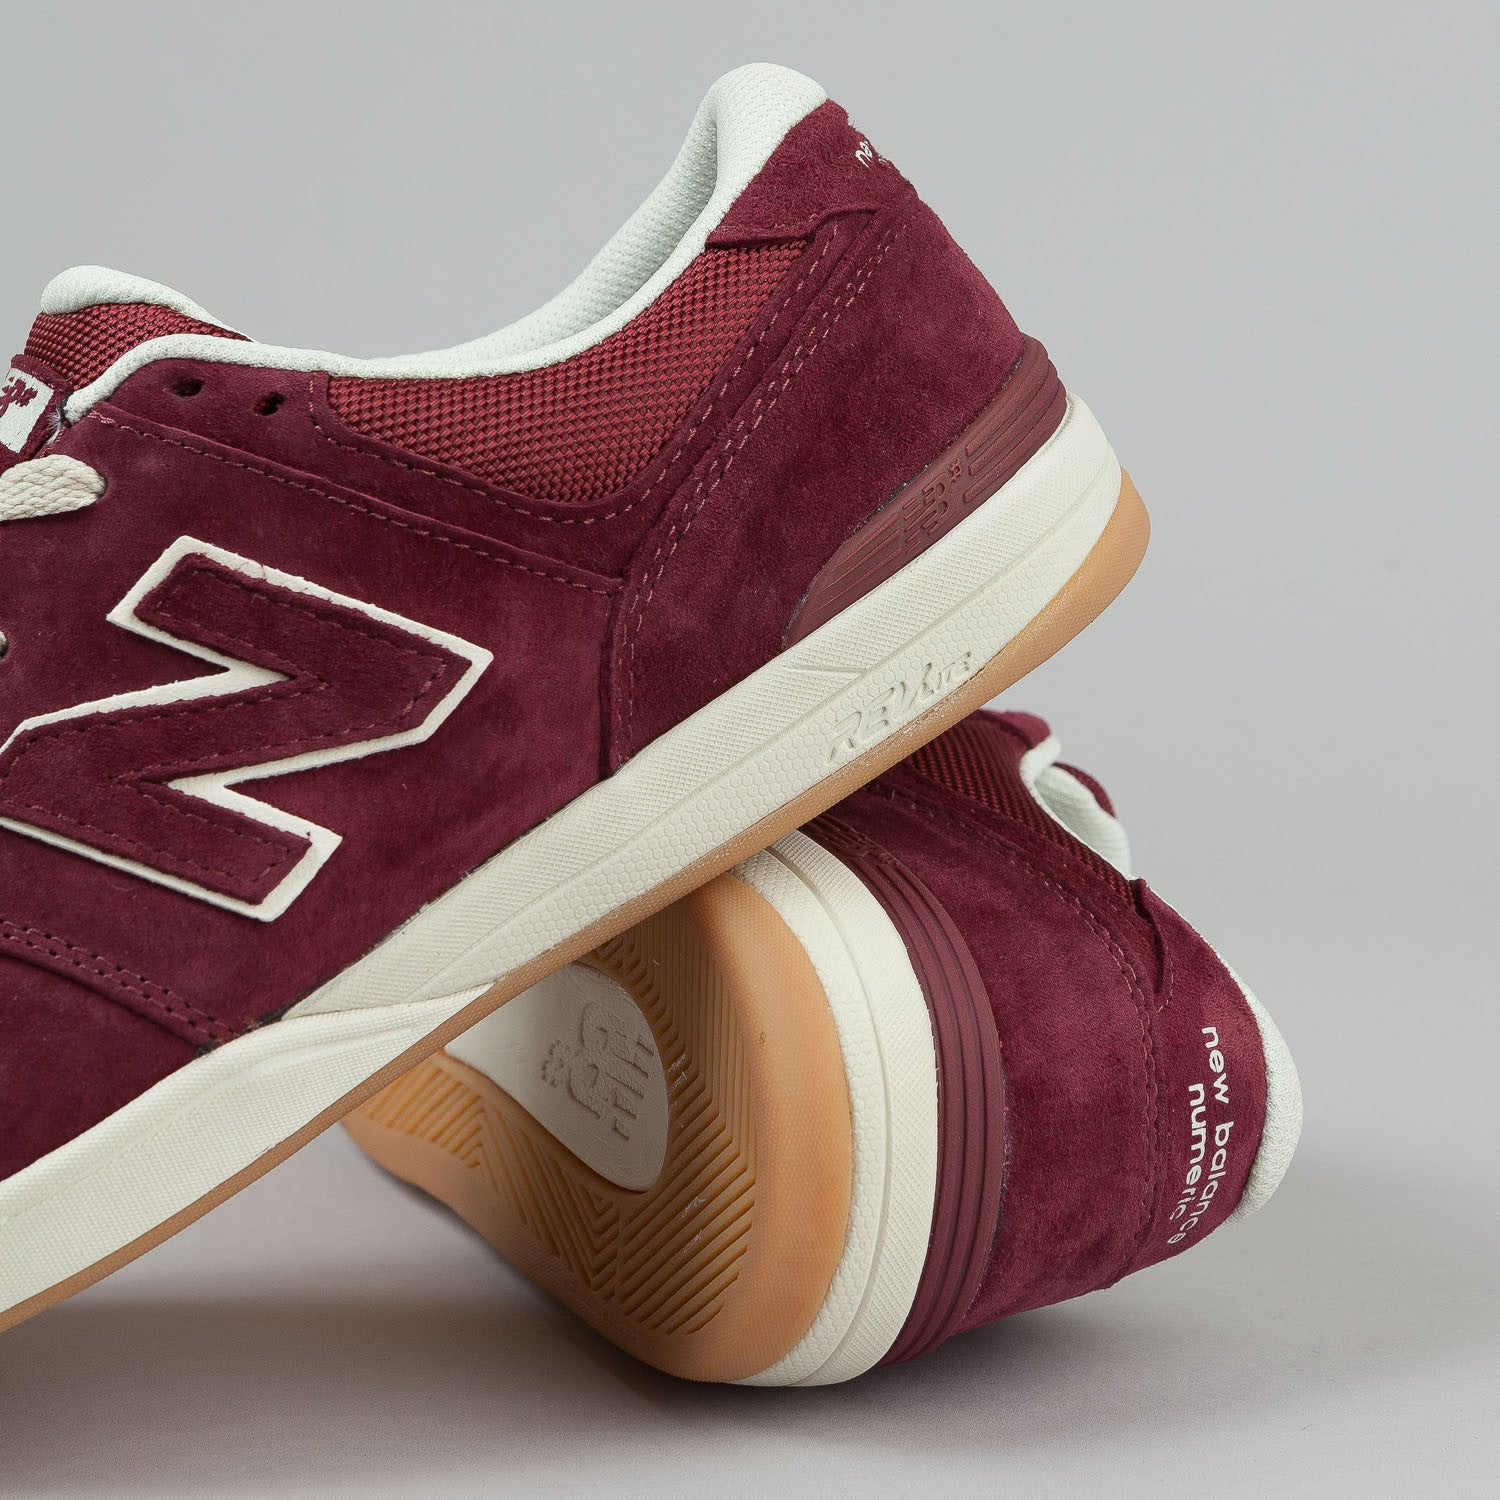 New Balance Numeric Logan S 636 Shoes - Red